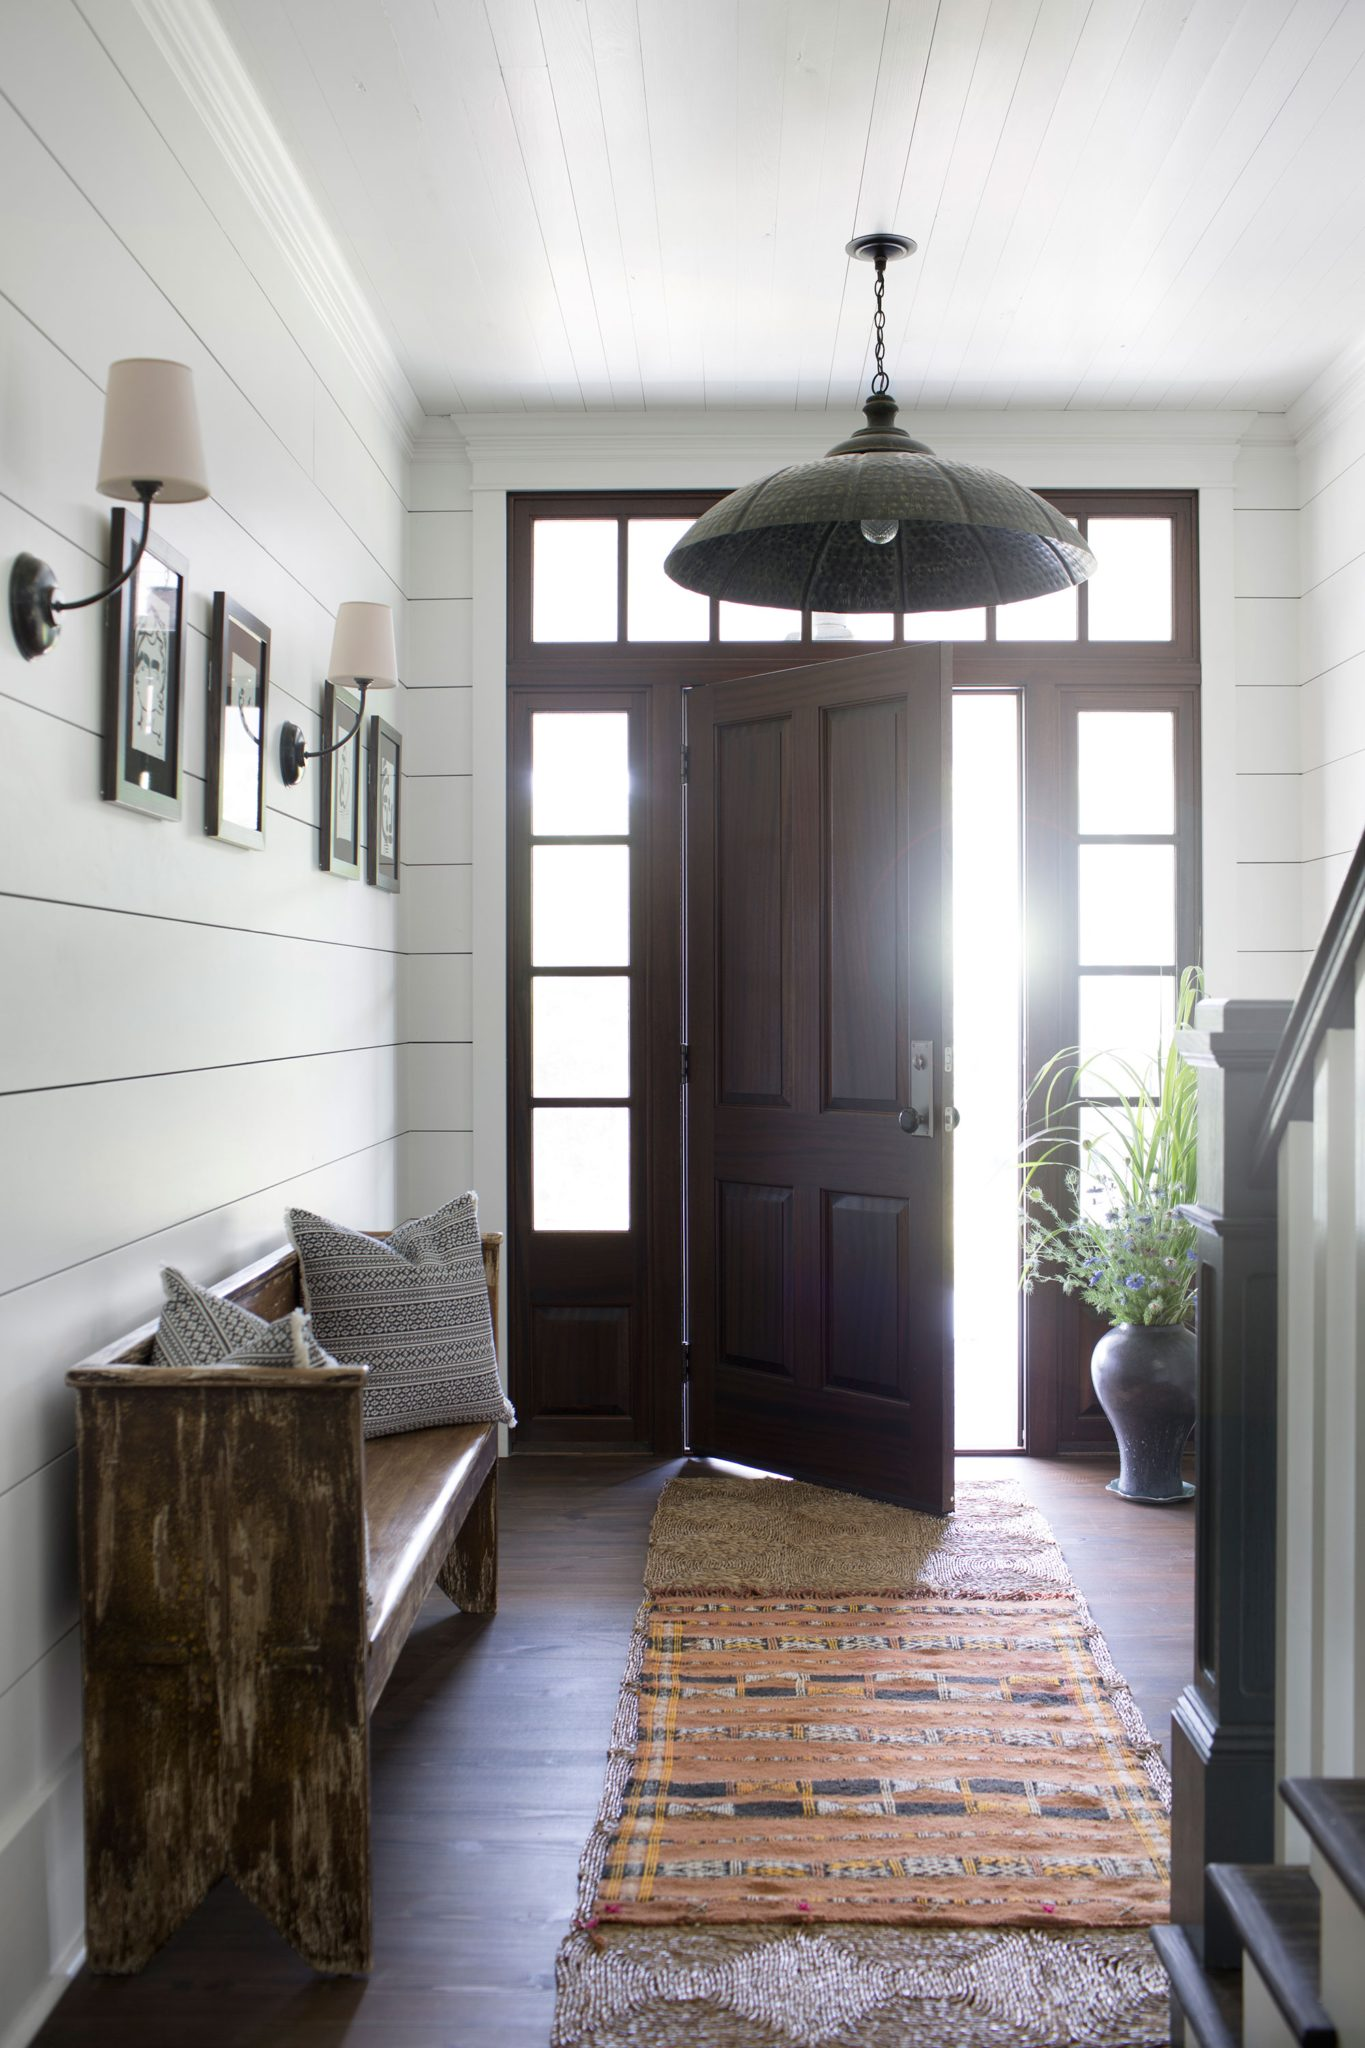 """Trend #5:Shiplap Paneling  """"Trends are something we actively work to avoid in design! But one design element that we've always loved and probably will forevermore is shiplap. It can be used to add infinite interest to otherwise plain jane walls, and it works just as well in a casual country dwelling as it does in a modern, sophisticated city home.""""  -Krista Nye Schwartz & Tami Ramsay, CLOTH & KIND  Photography by Sarah Dorio"""